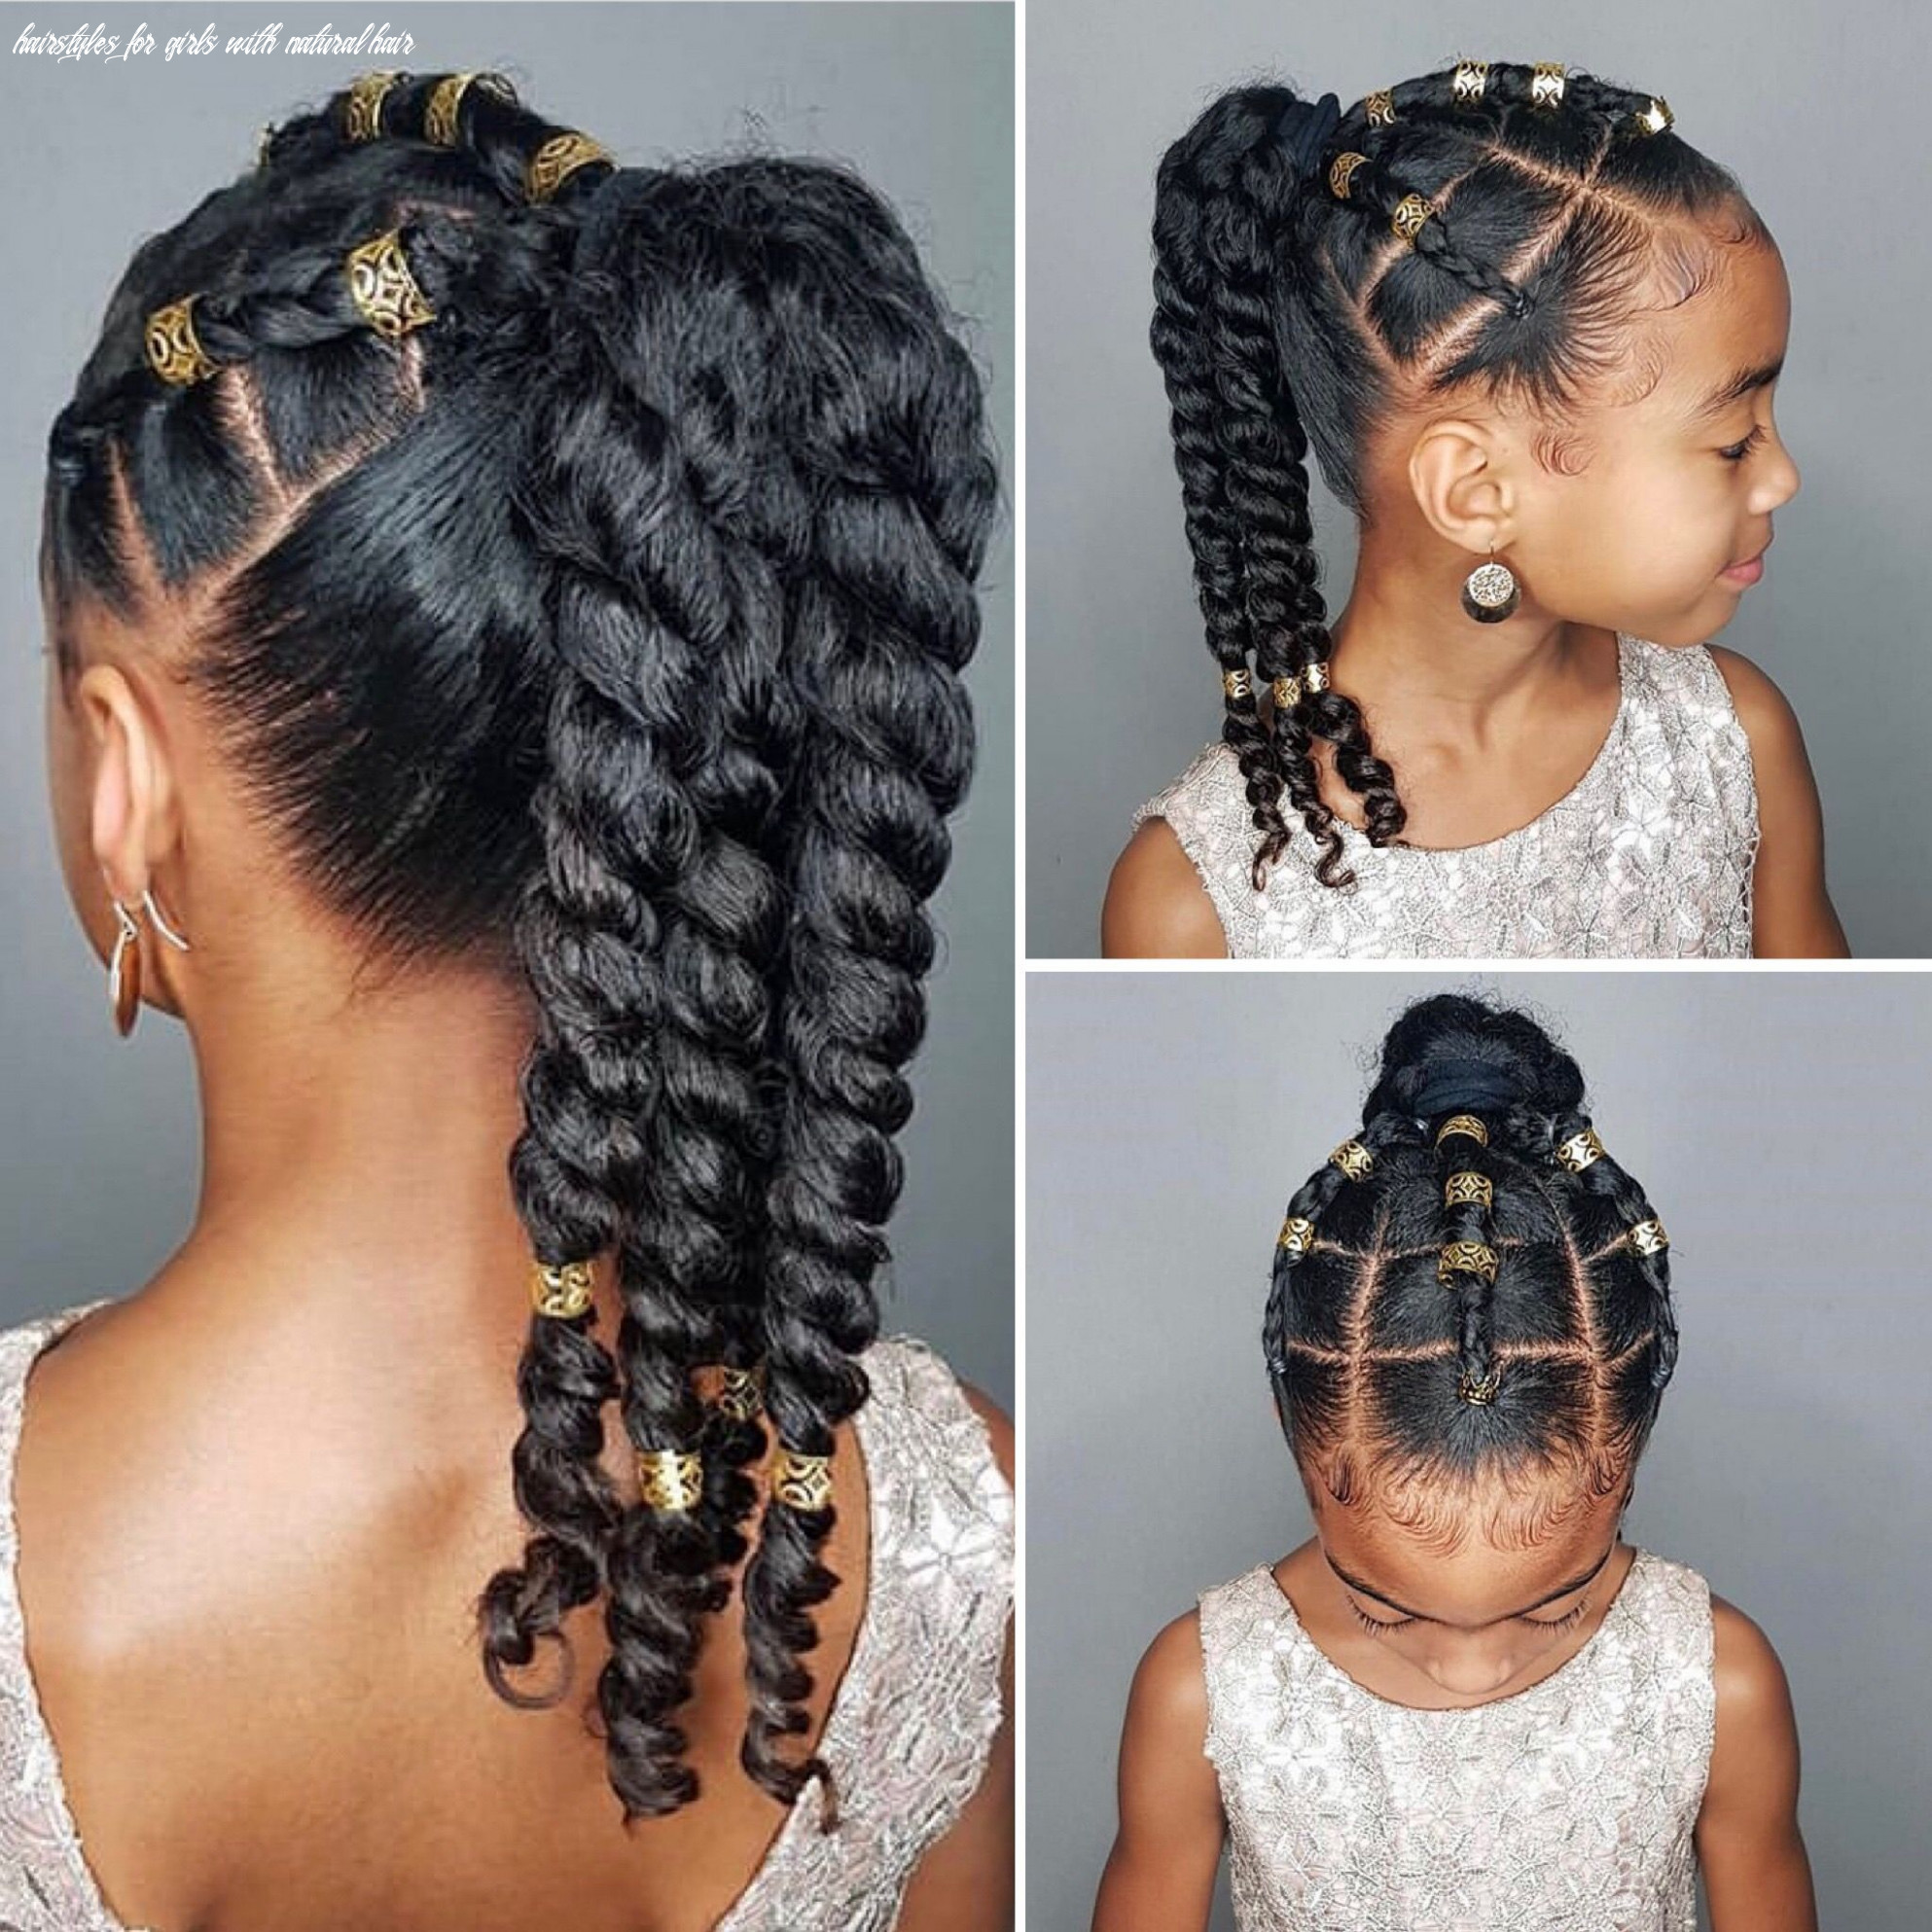 Pin by indy11k on kids braids | girls natural hairstyles, natural